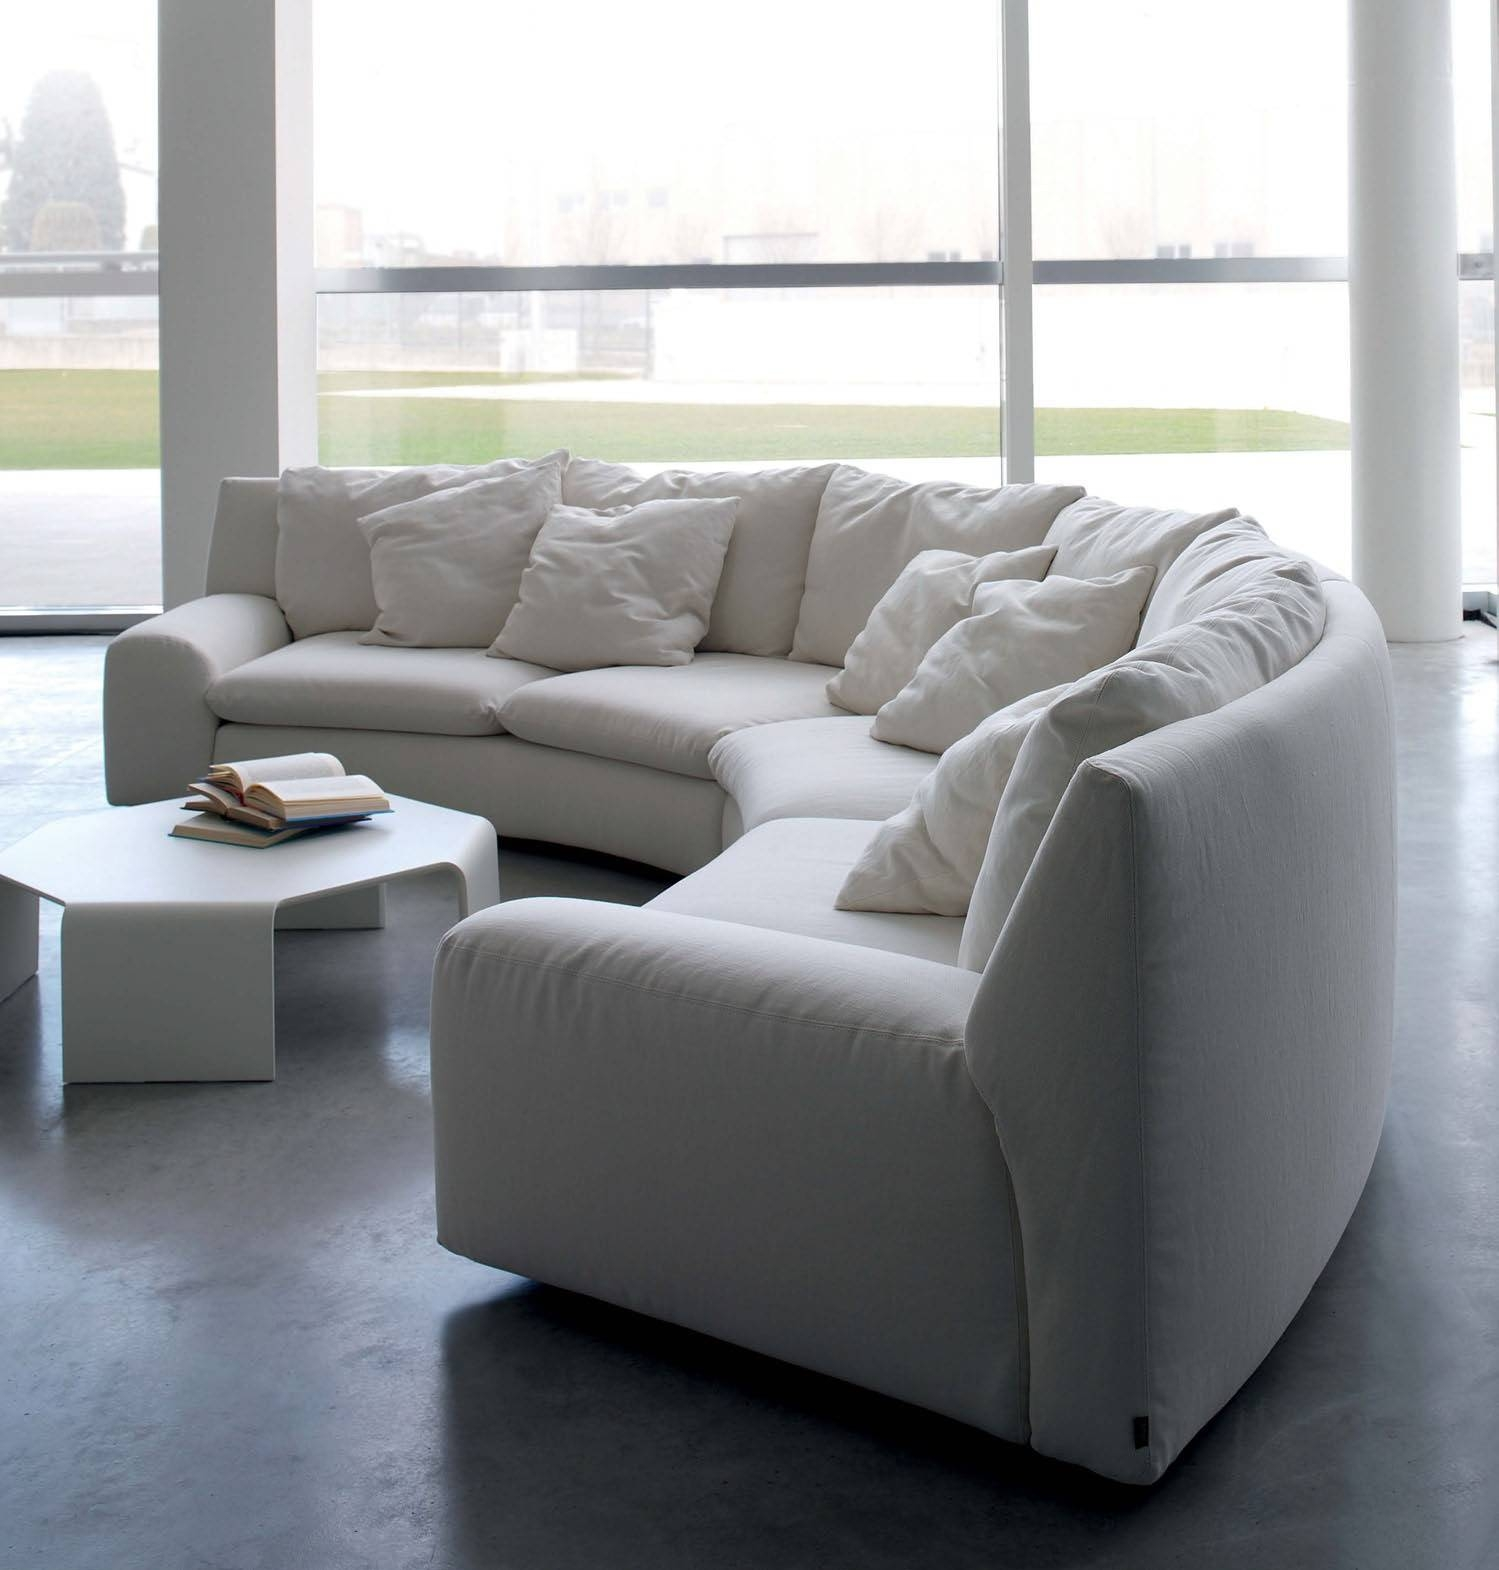 The Semicircular Sofa In Fabric Ben Ben, Arflex - Luxury Furniture Mr within Semicircular Sofa (Image 30 of 30)